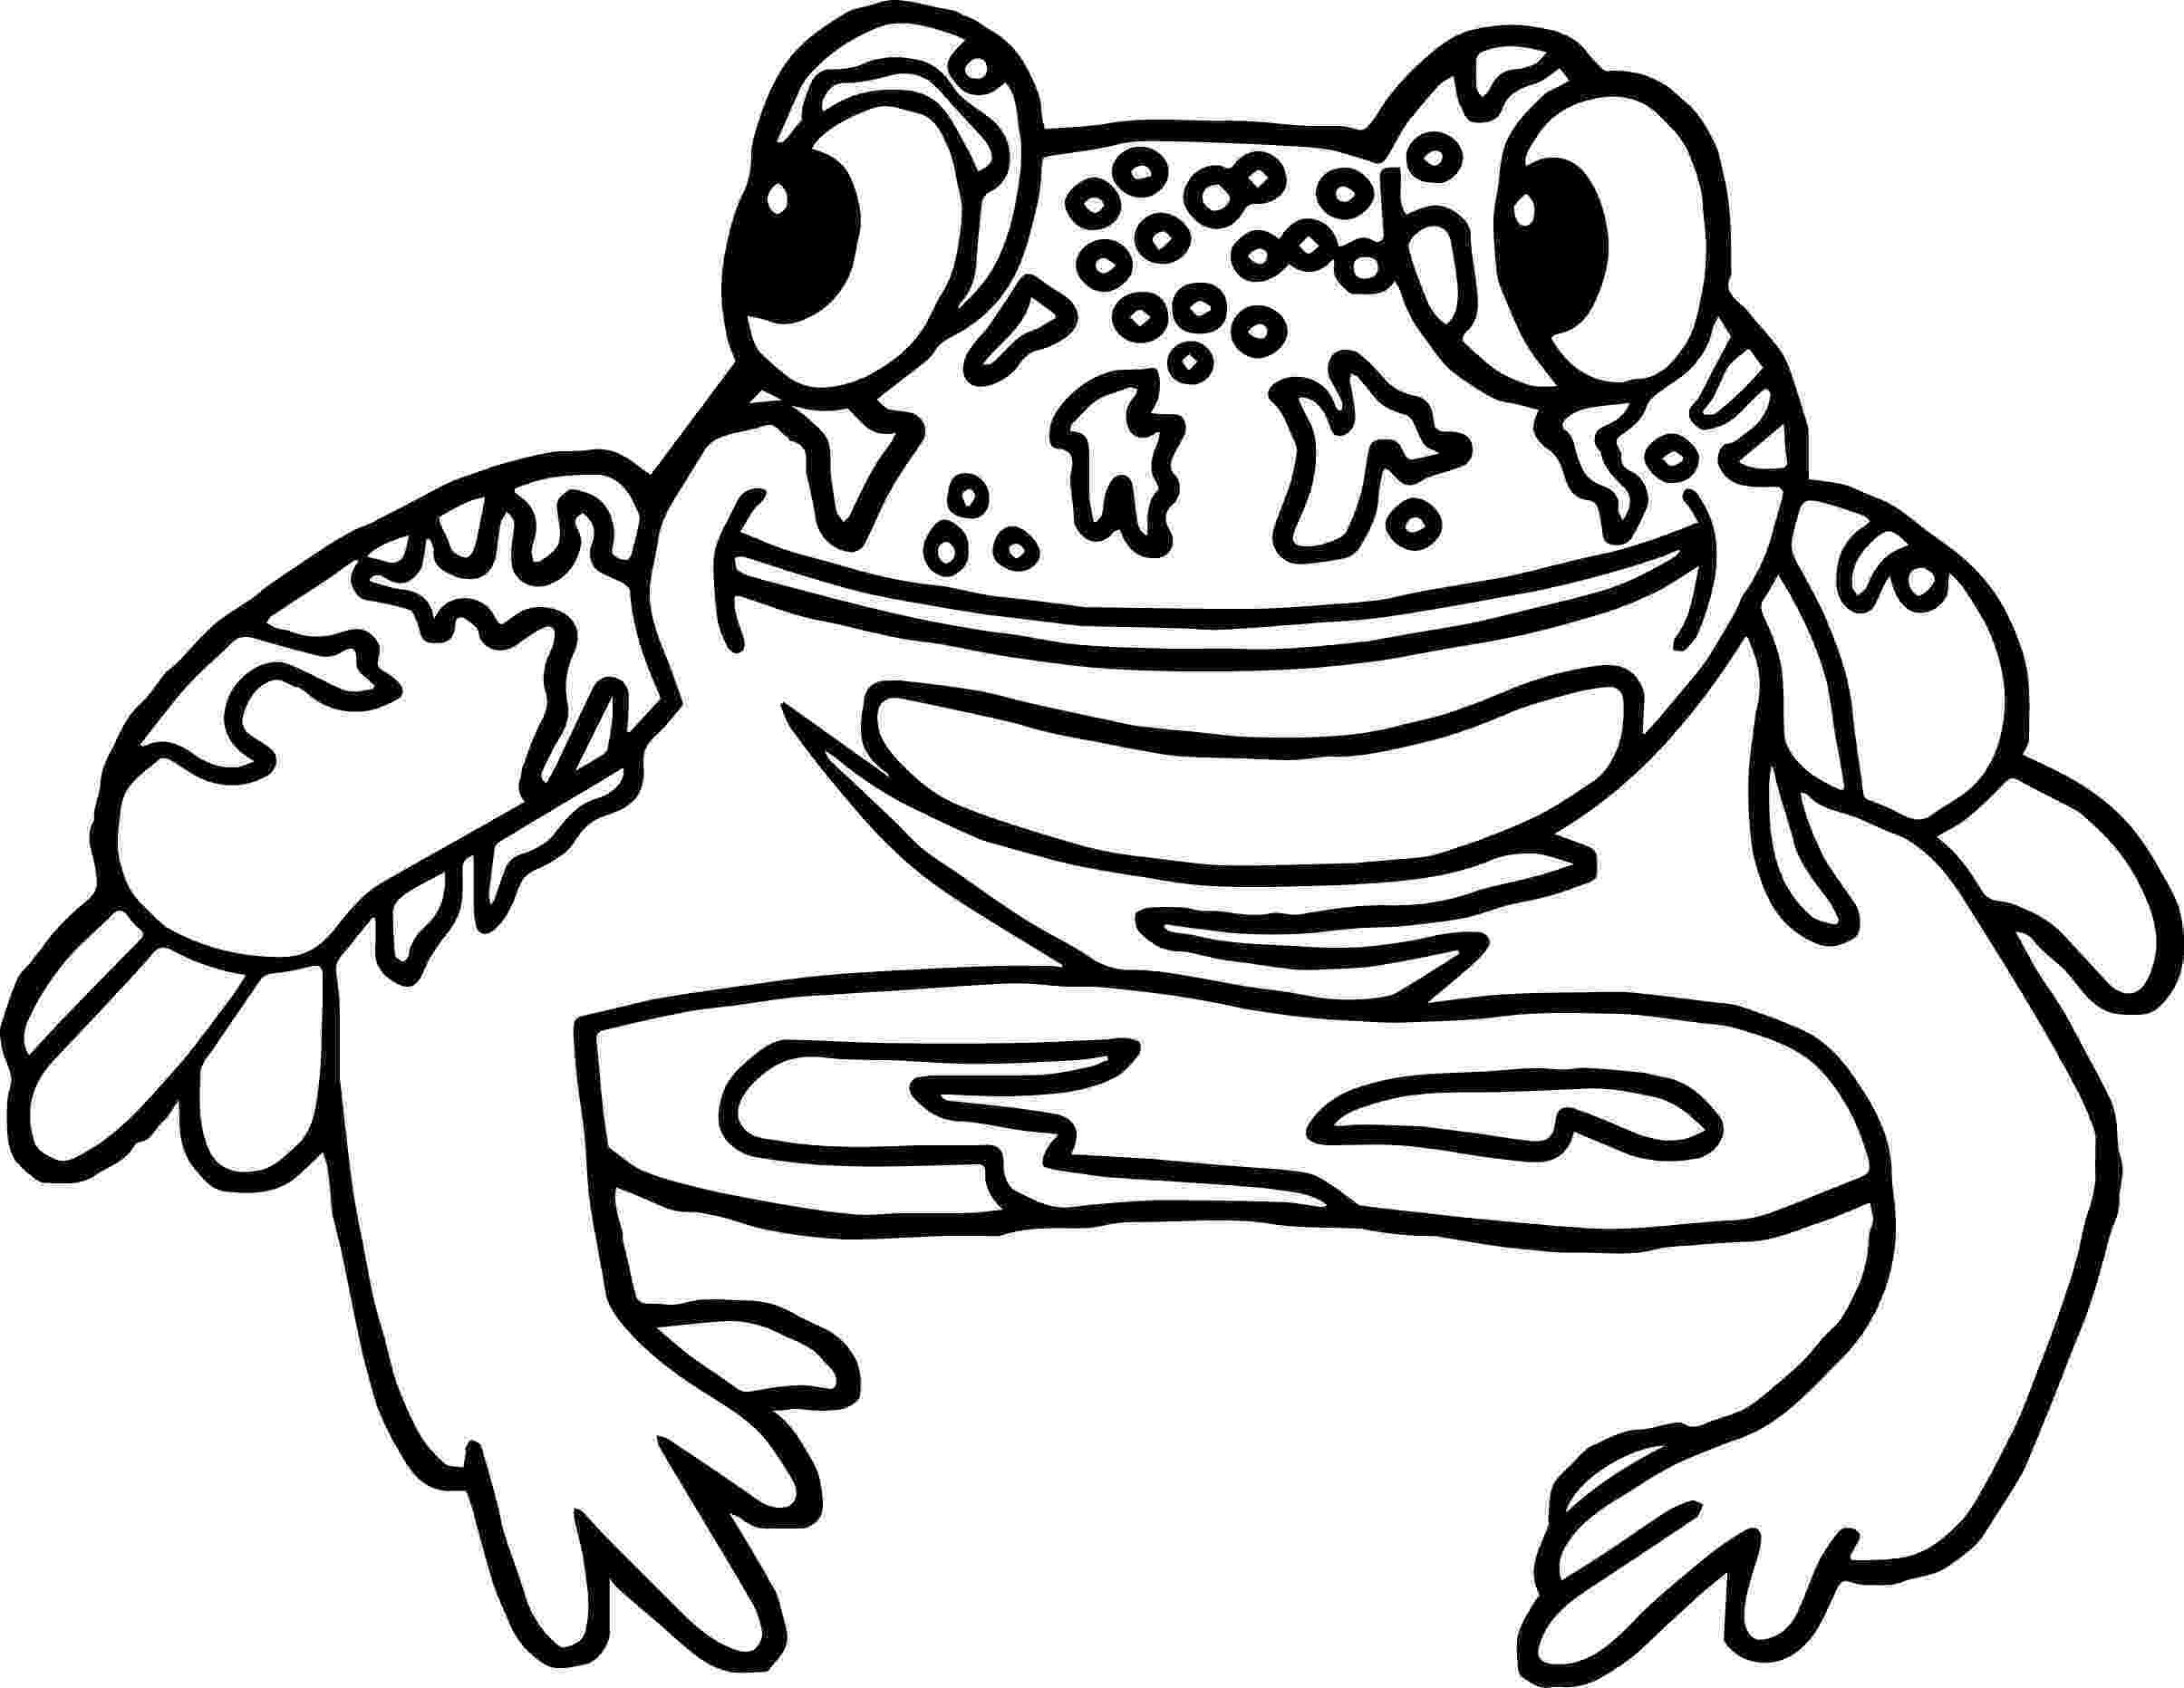 amphibian coloring pages animal reptile and amphibians frog coloring pages amphibian coloring pages